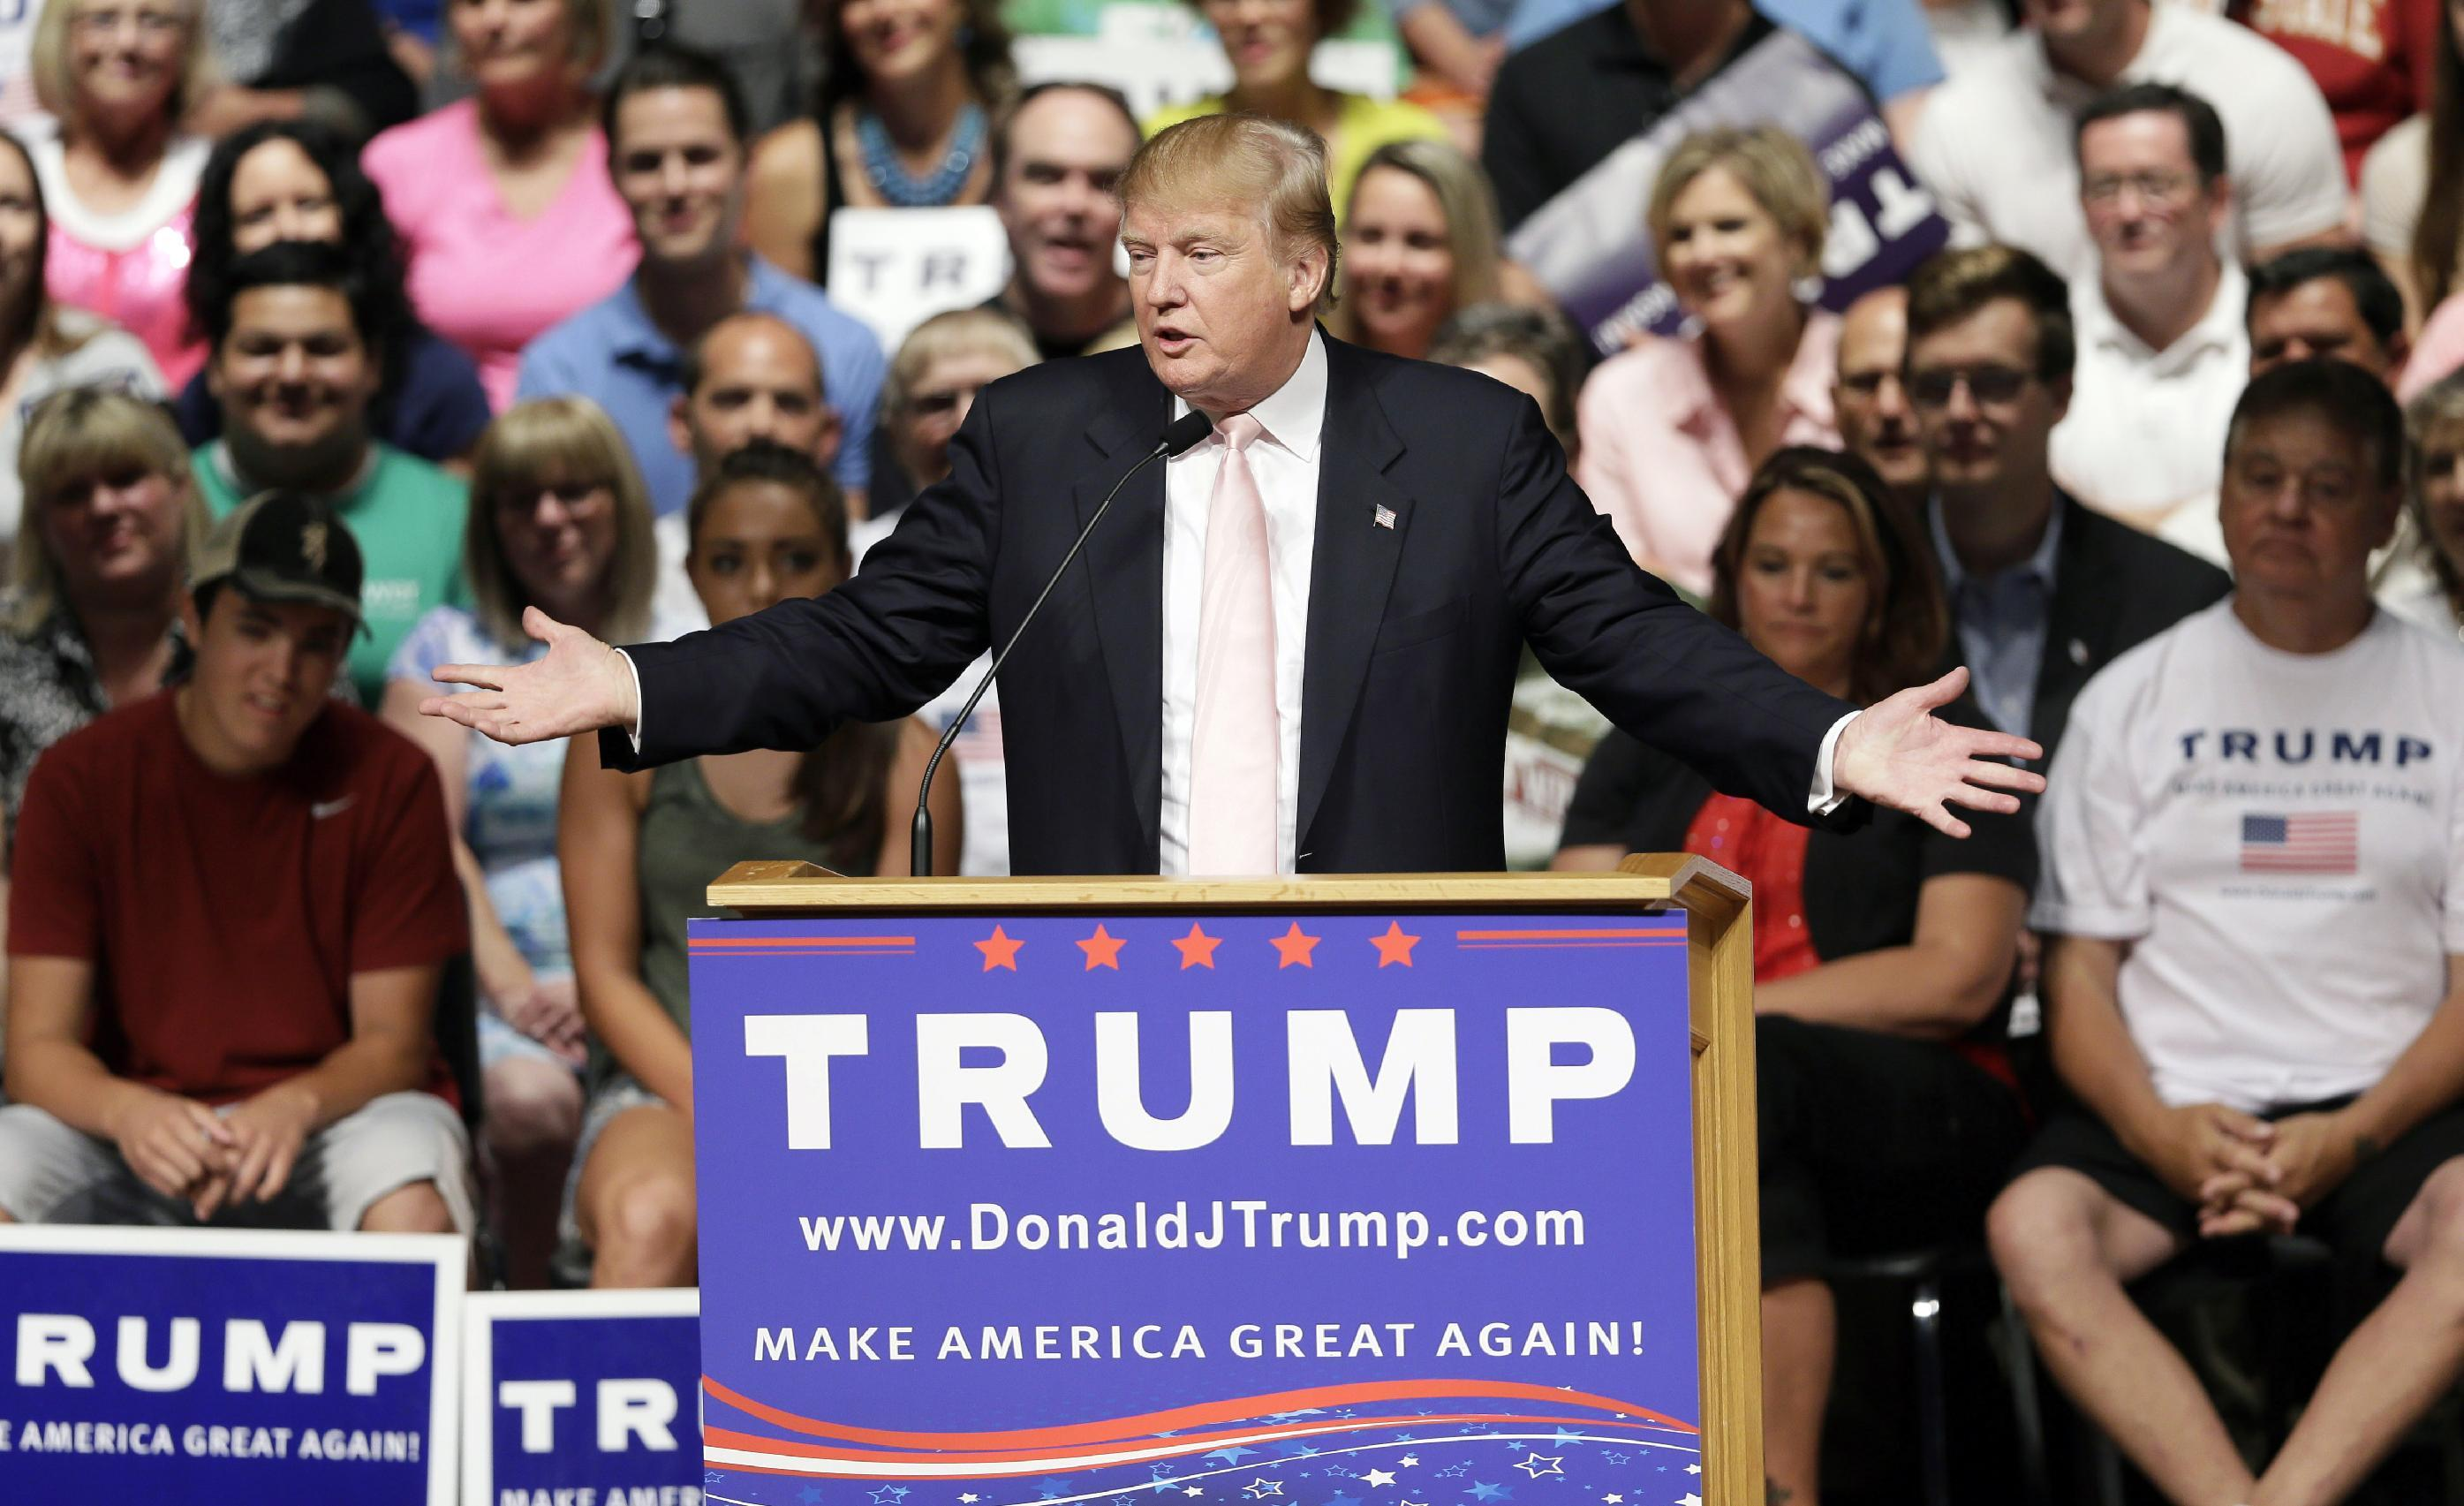 5 things to consider as Trump dangles 3rd party prospect